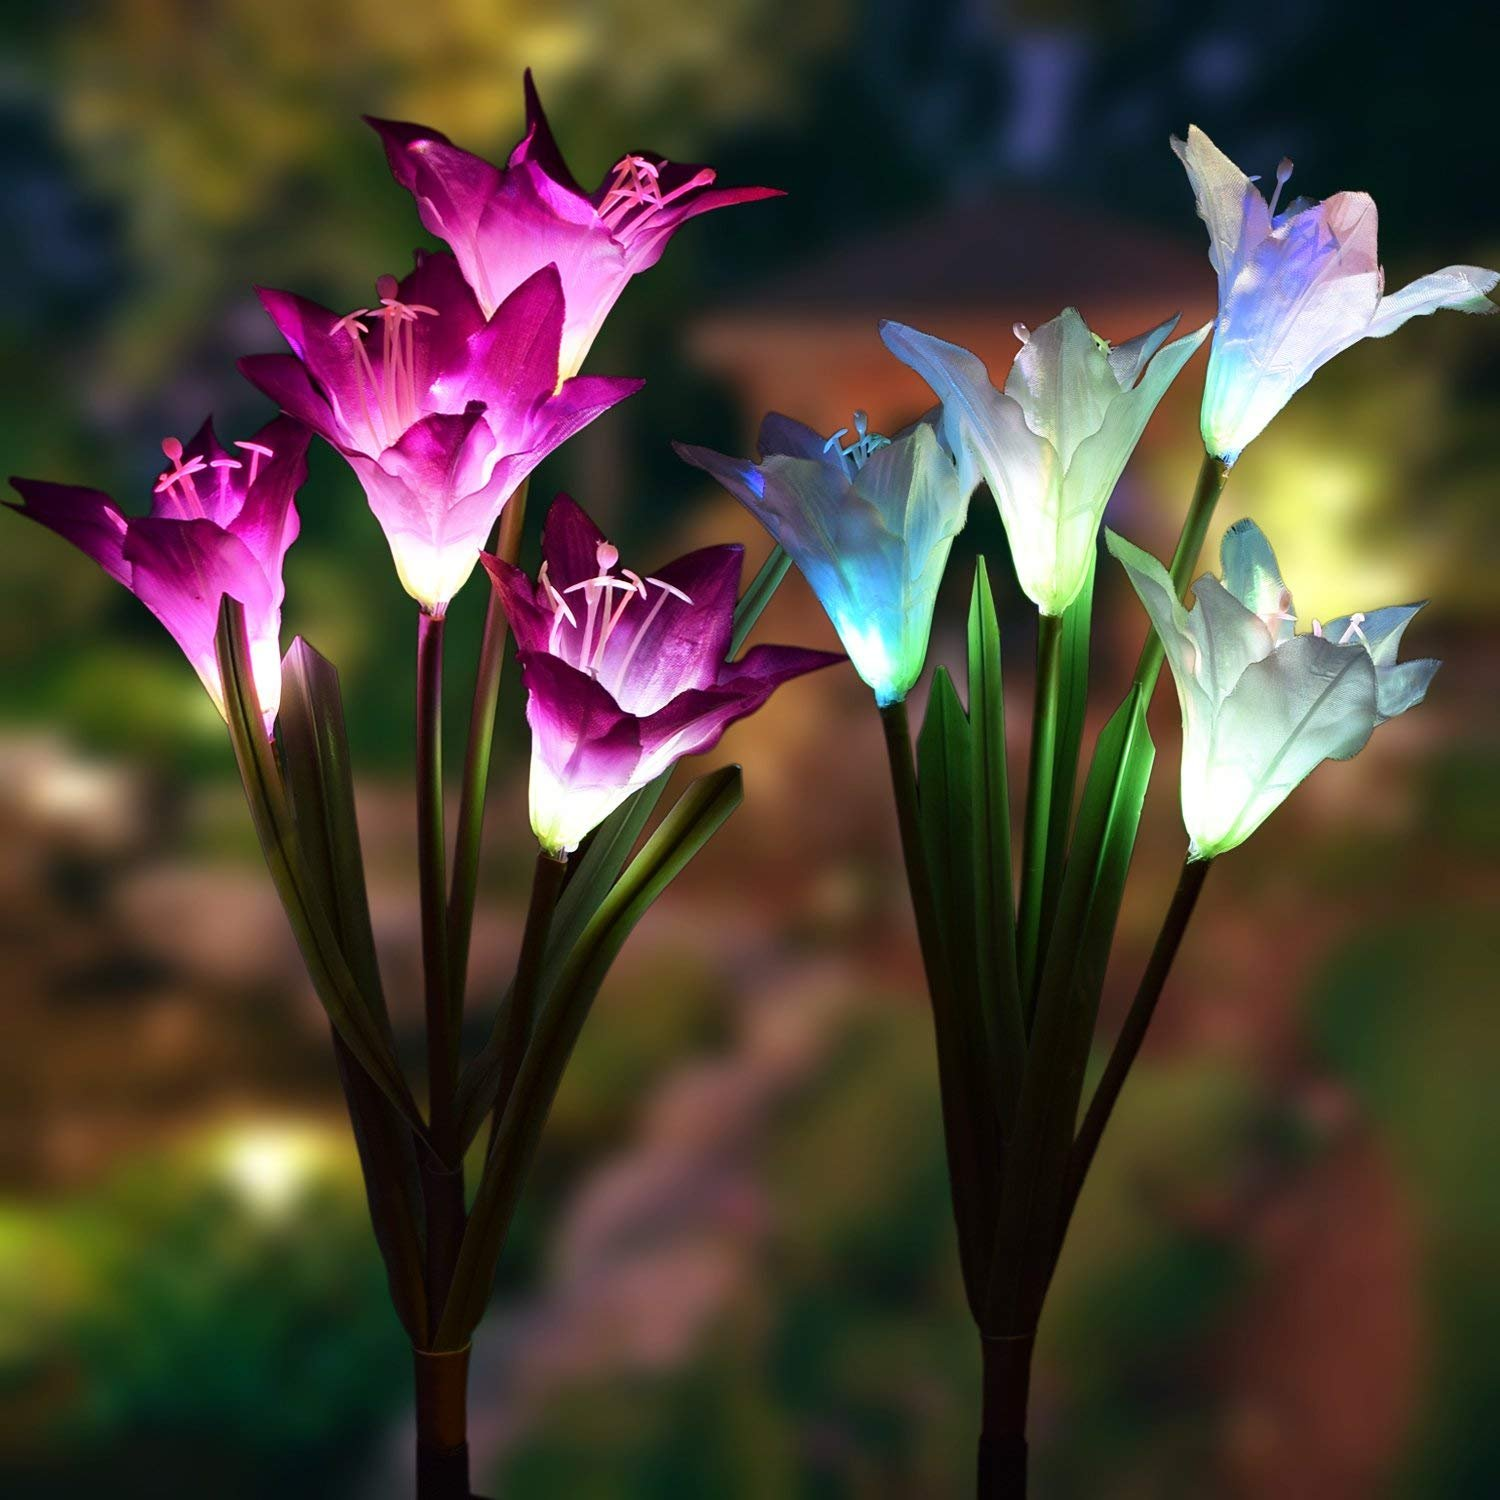 [4 Pack] Solar Lights Outdoor - Solar Garden Lights with 16 Lily Flowers | Color Changing LED Solar Stake Lights for Garden, Patio, Path, Backyard by AWJ Products (Image #3)